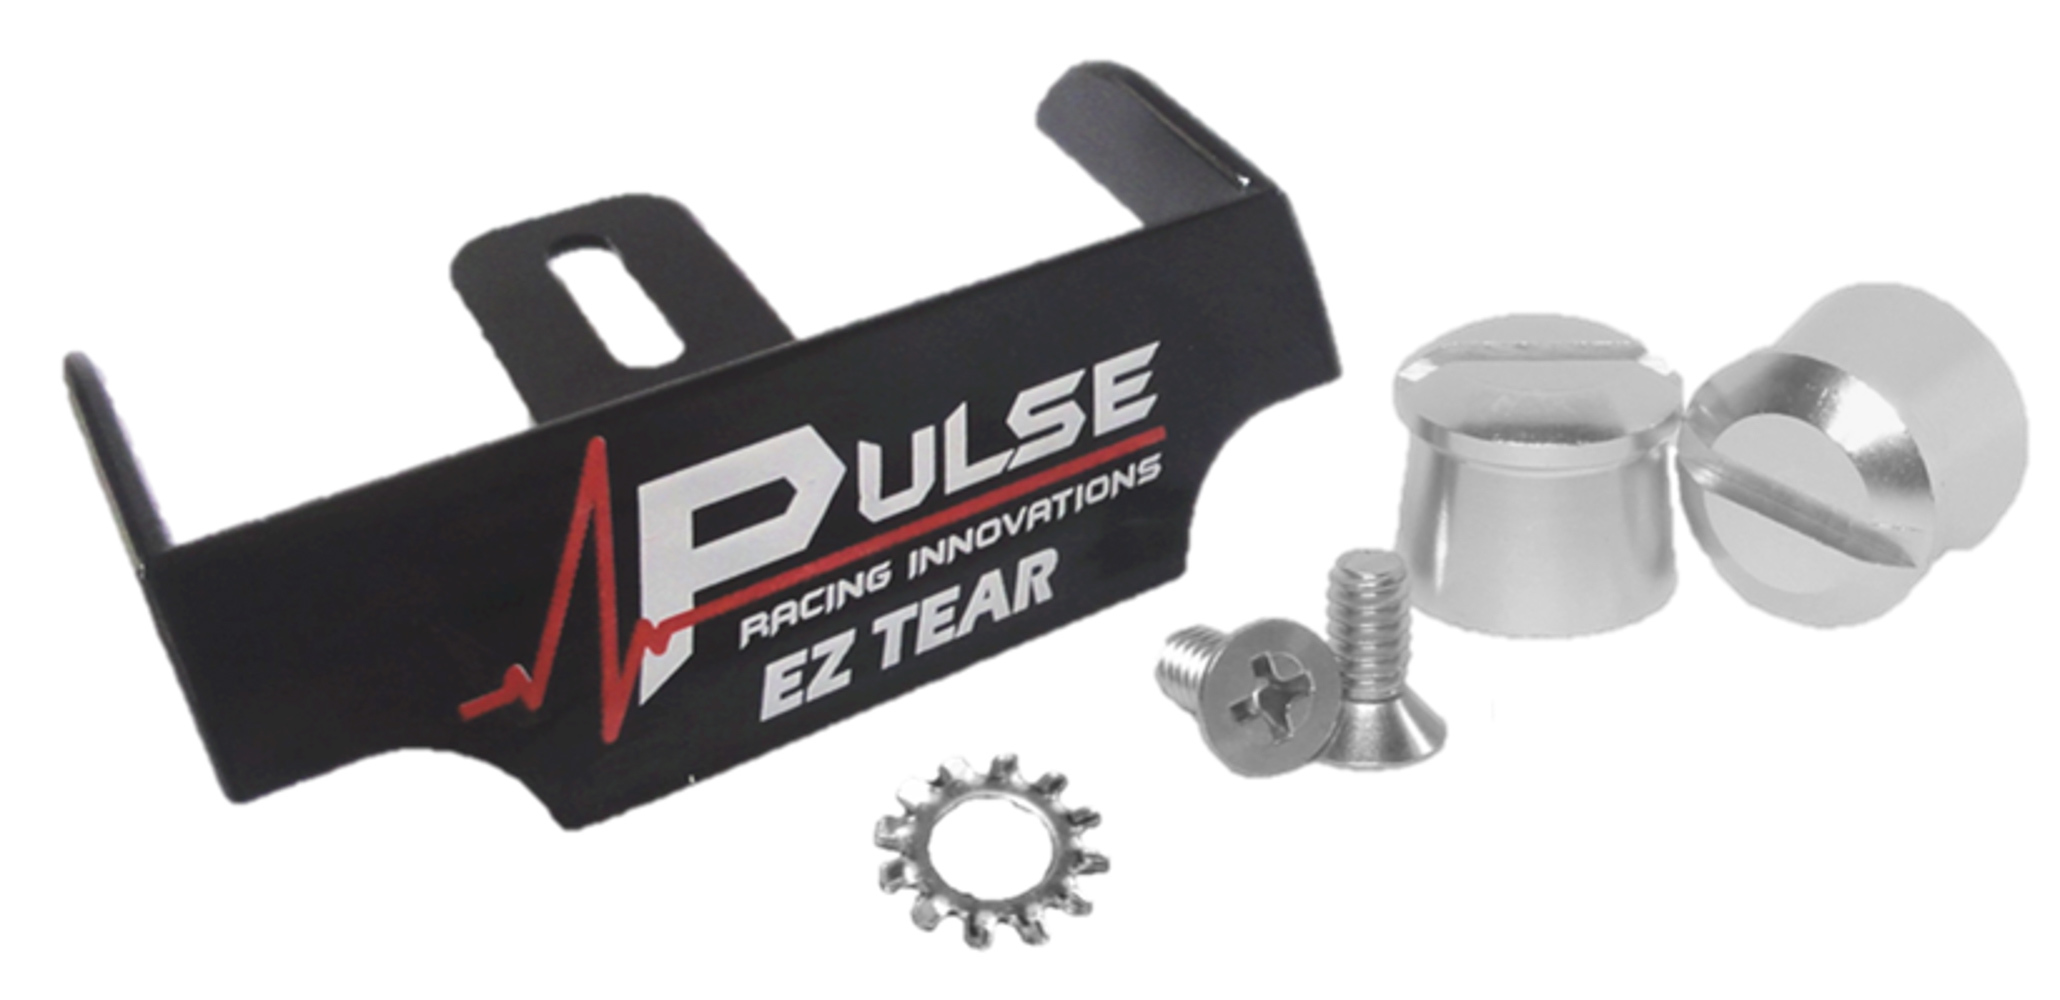 Pulse Racing Innovations EZTS102BKP Helmet Tear Off Ramp, Adjustable, Silver Aluminum Post Included, Black, Each